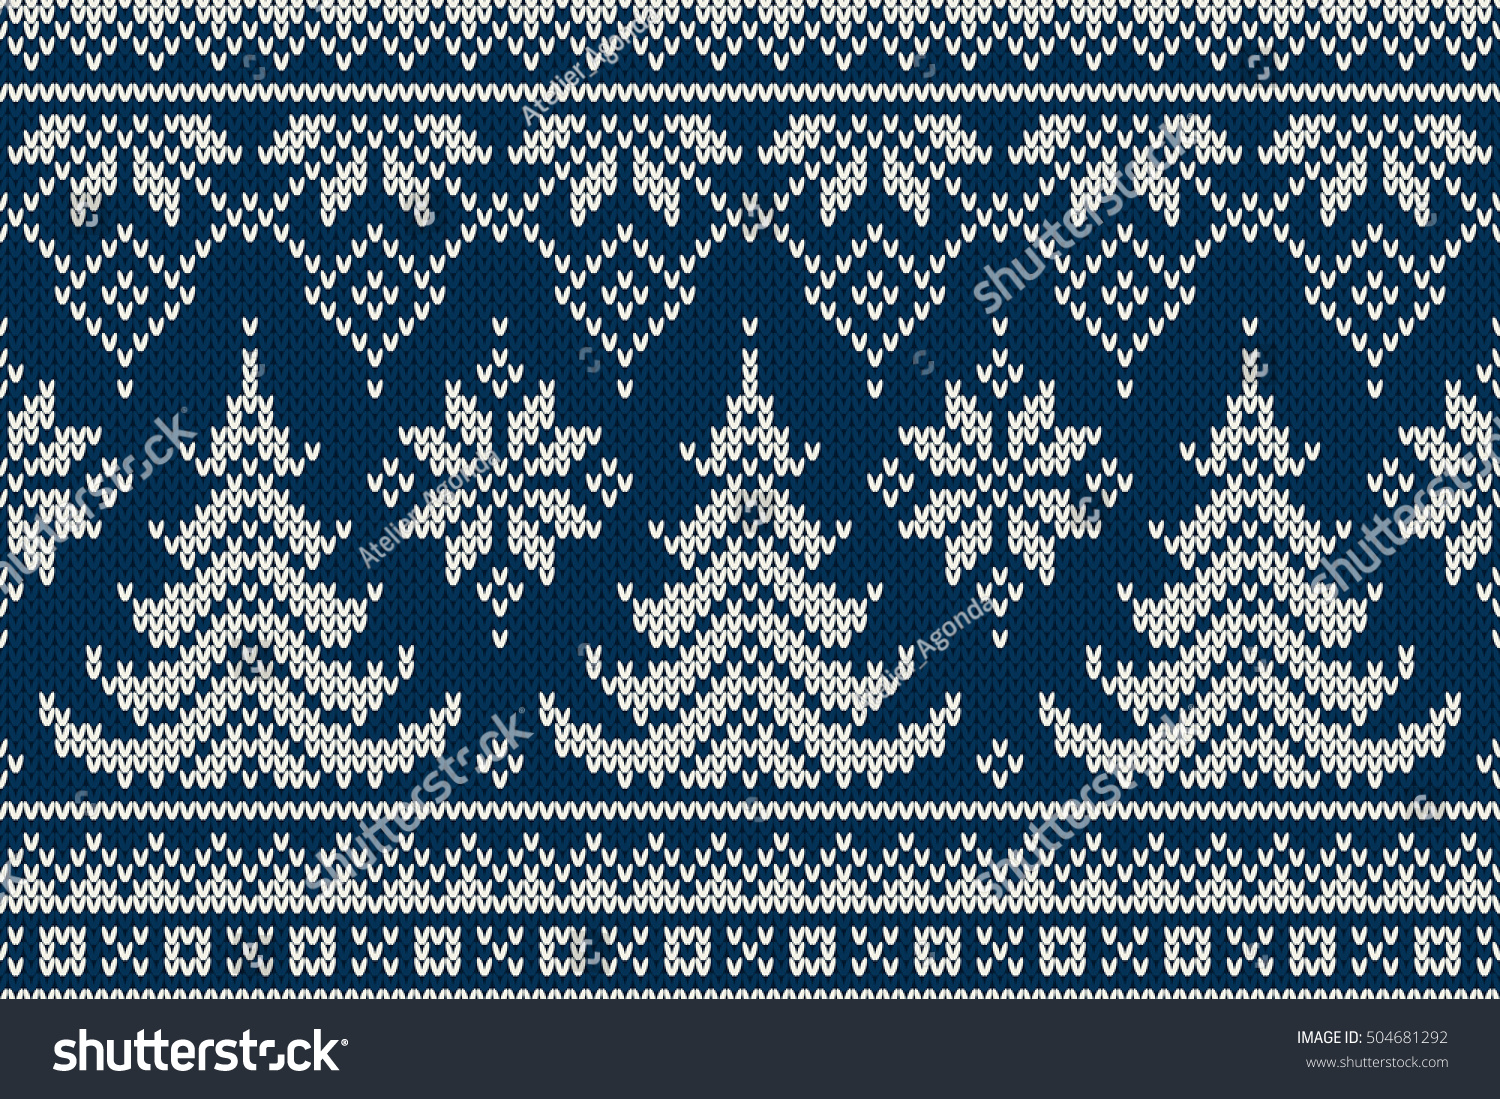 Winter Holiday Seamless Knitting Pattern Christmas Stock Vector HD ...